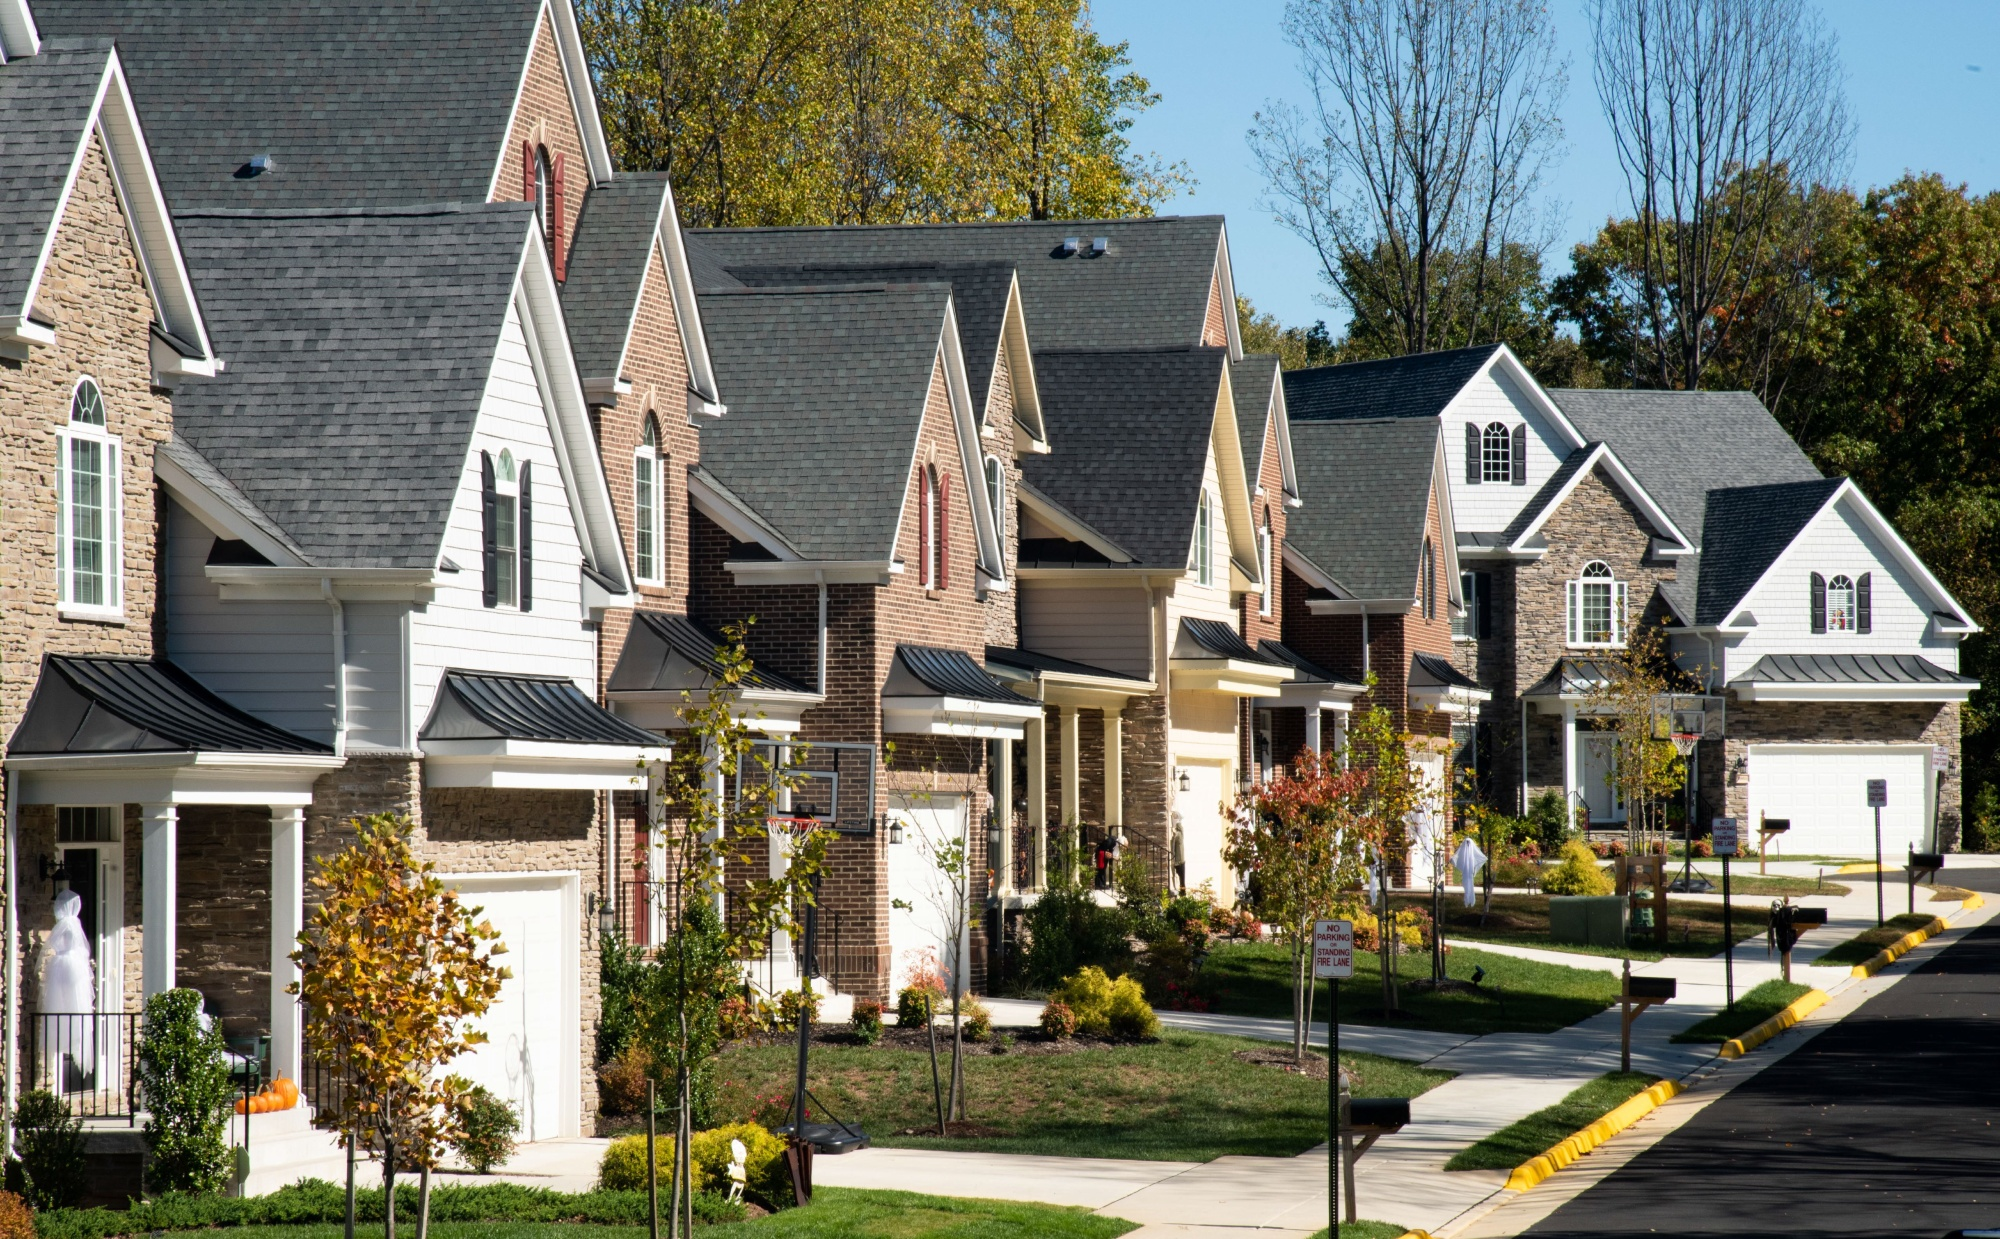 Home appraisalsin predominantly Black and Latino neighborhoods are veering even farther from those in majority-white neighborhoods.